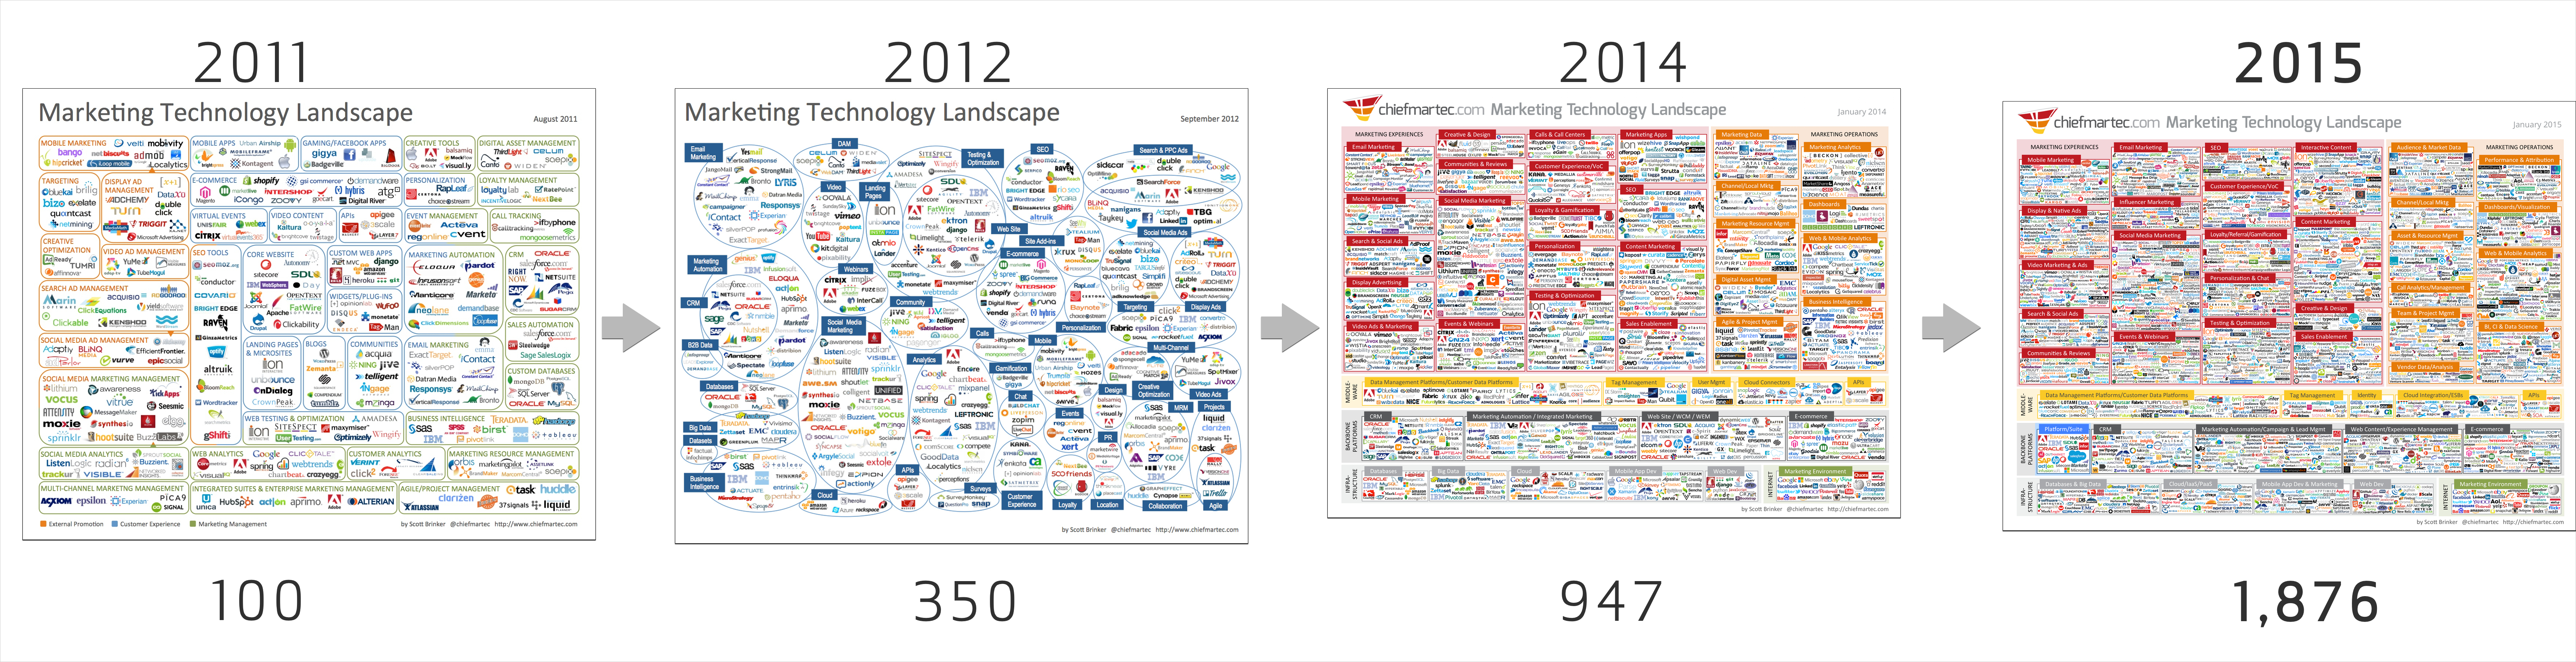 Marketing-Technology-Landscape-Evolution